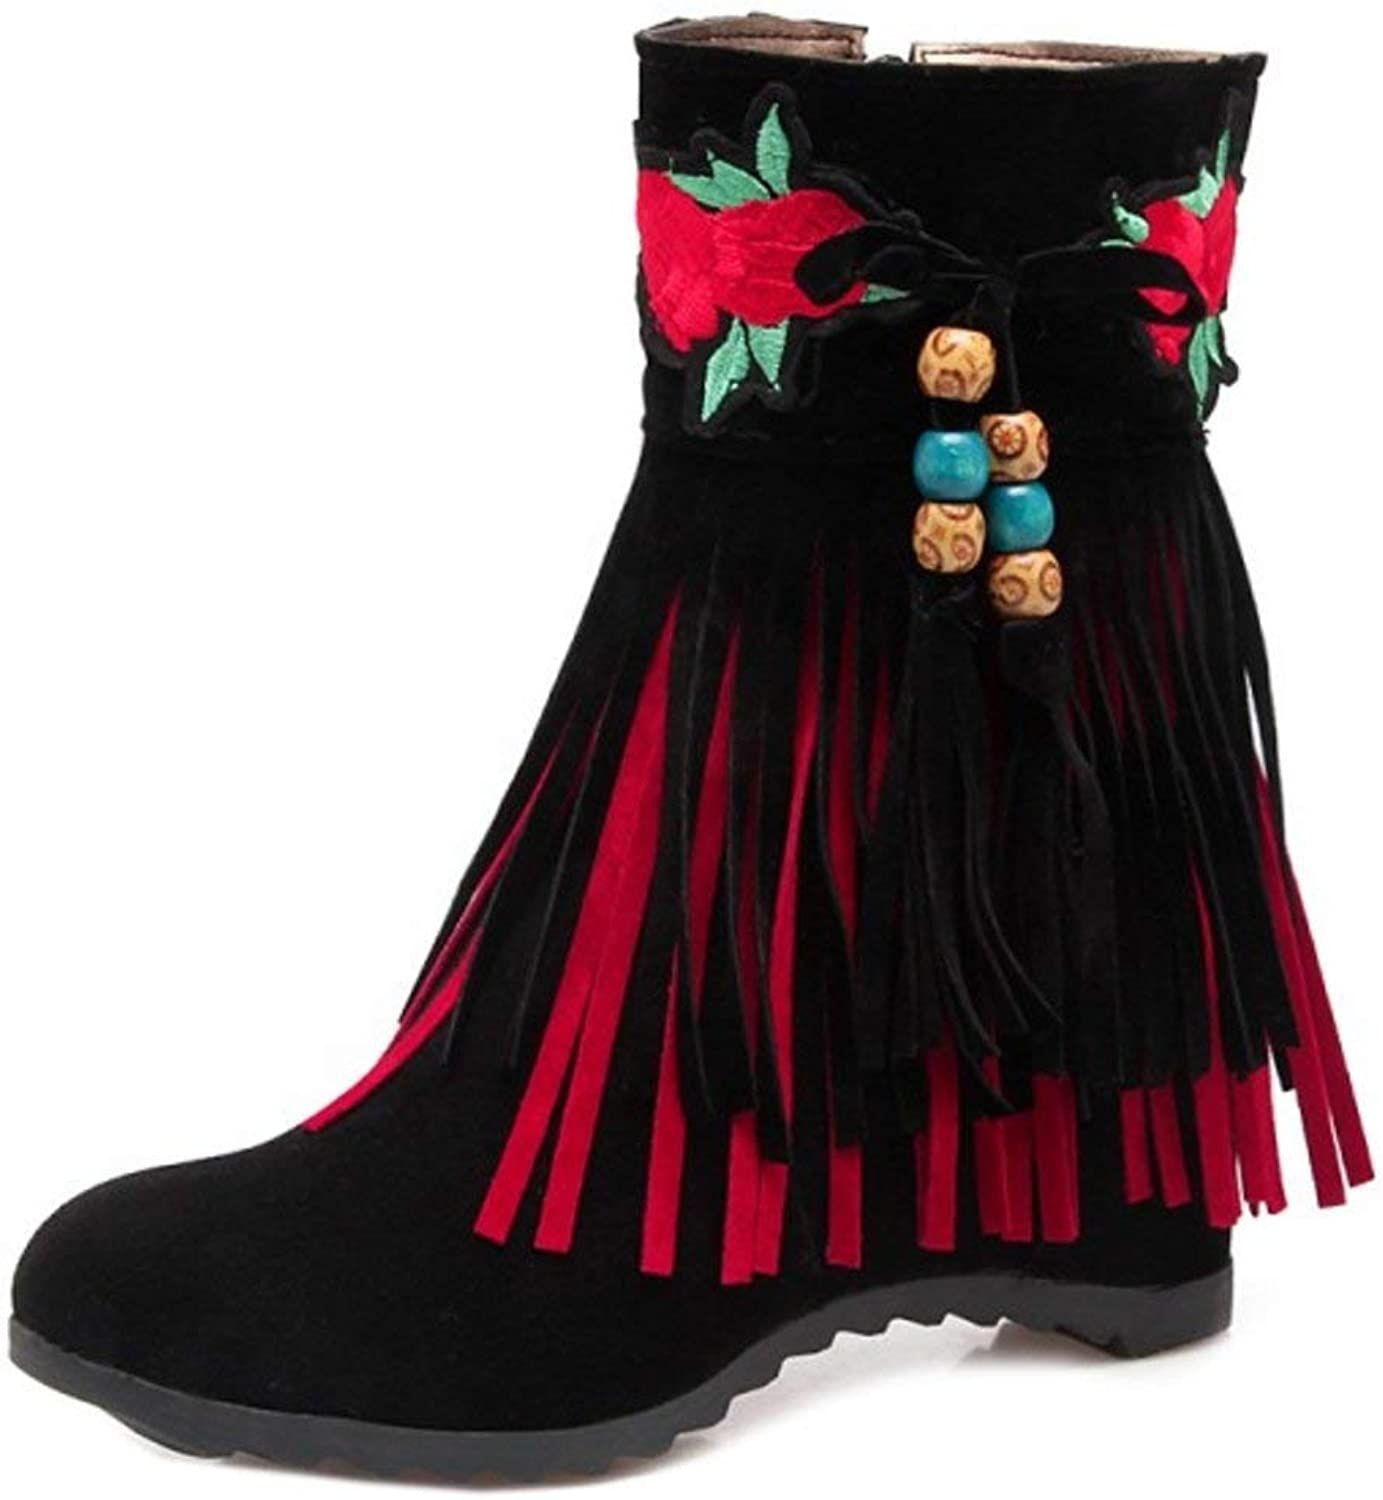 Unm Women Classic Wedges Heel Ankle Boots Retro Fringe Boots with Zipper